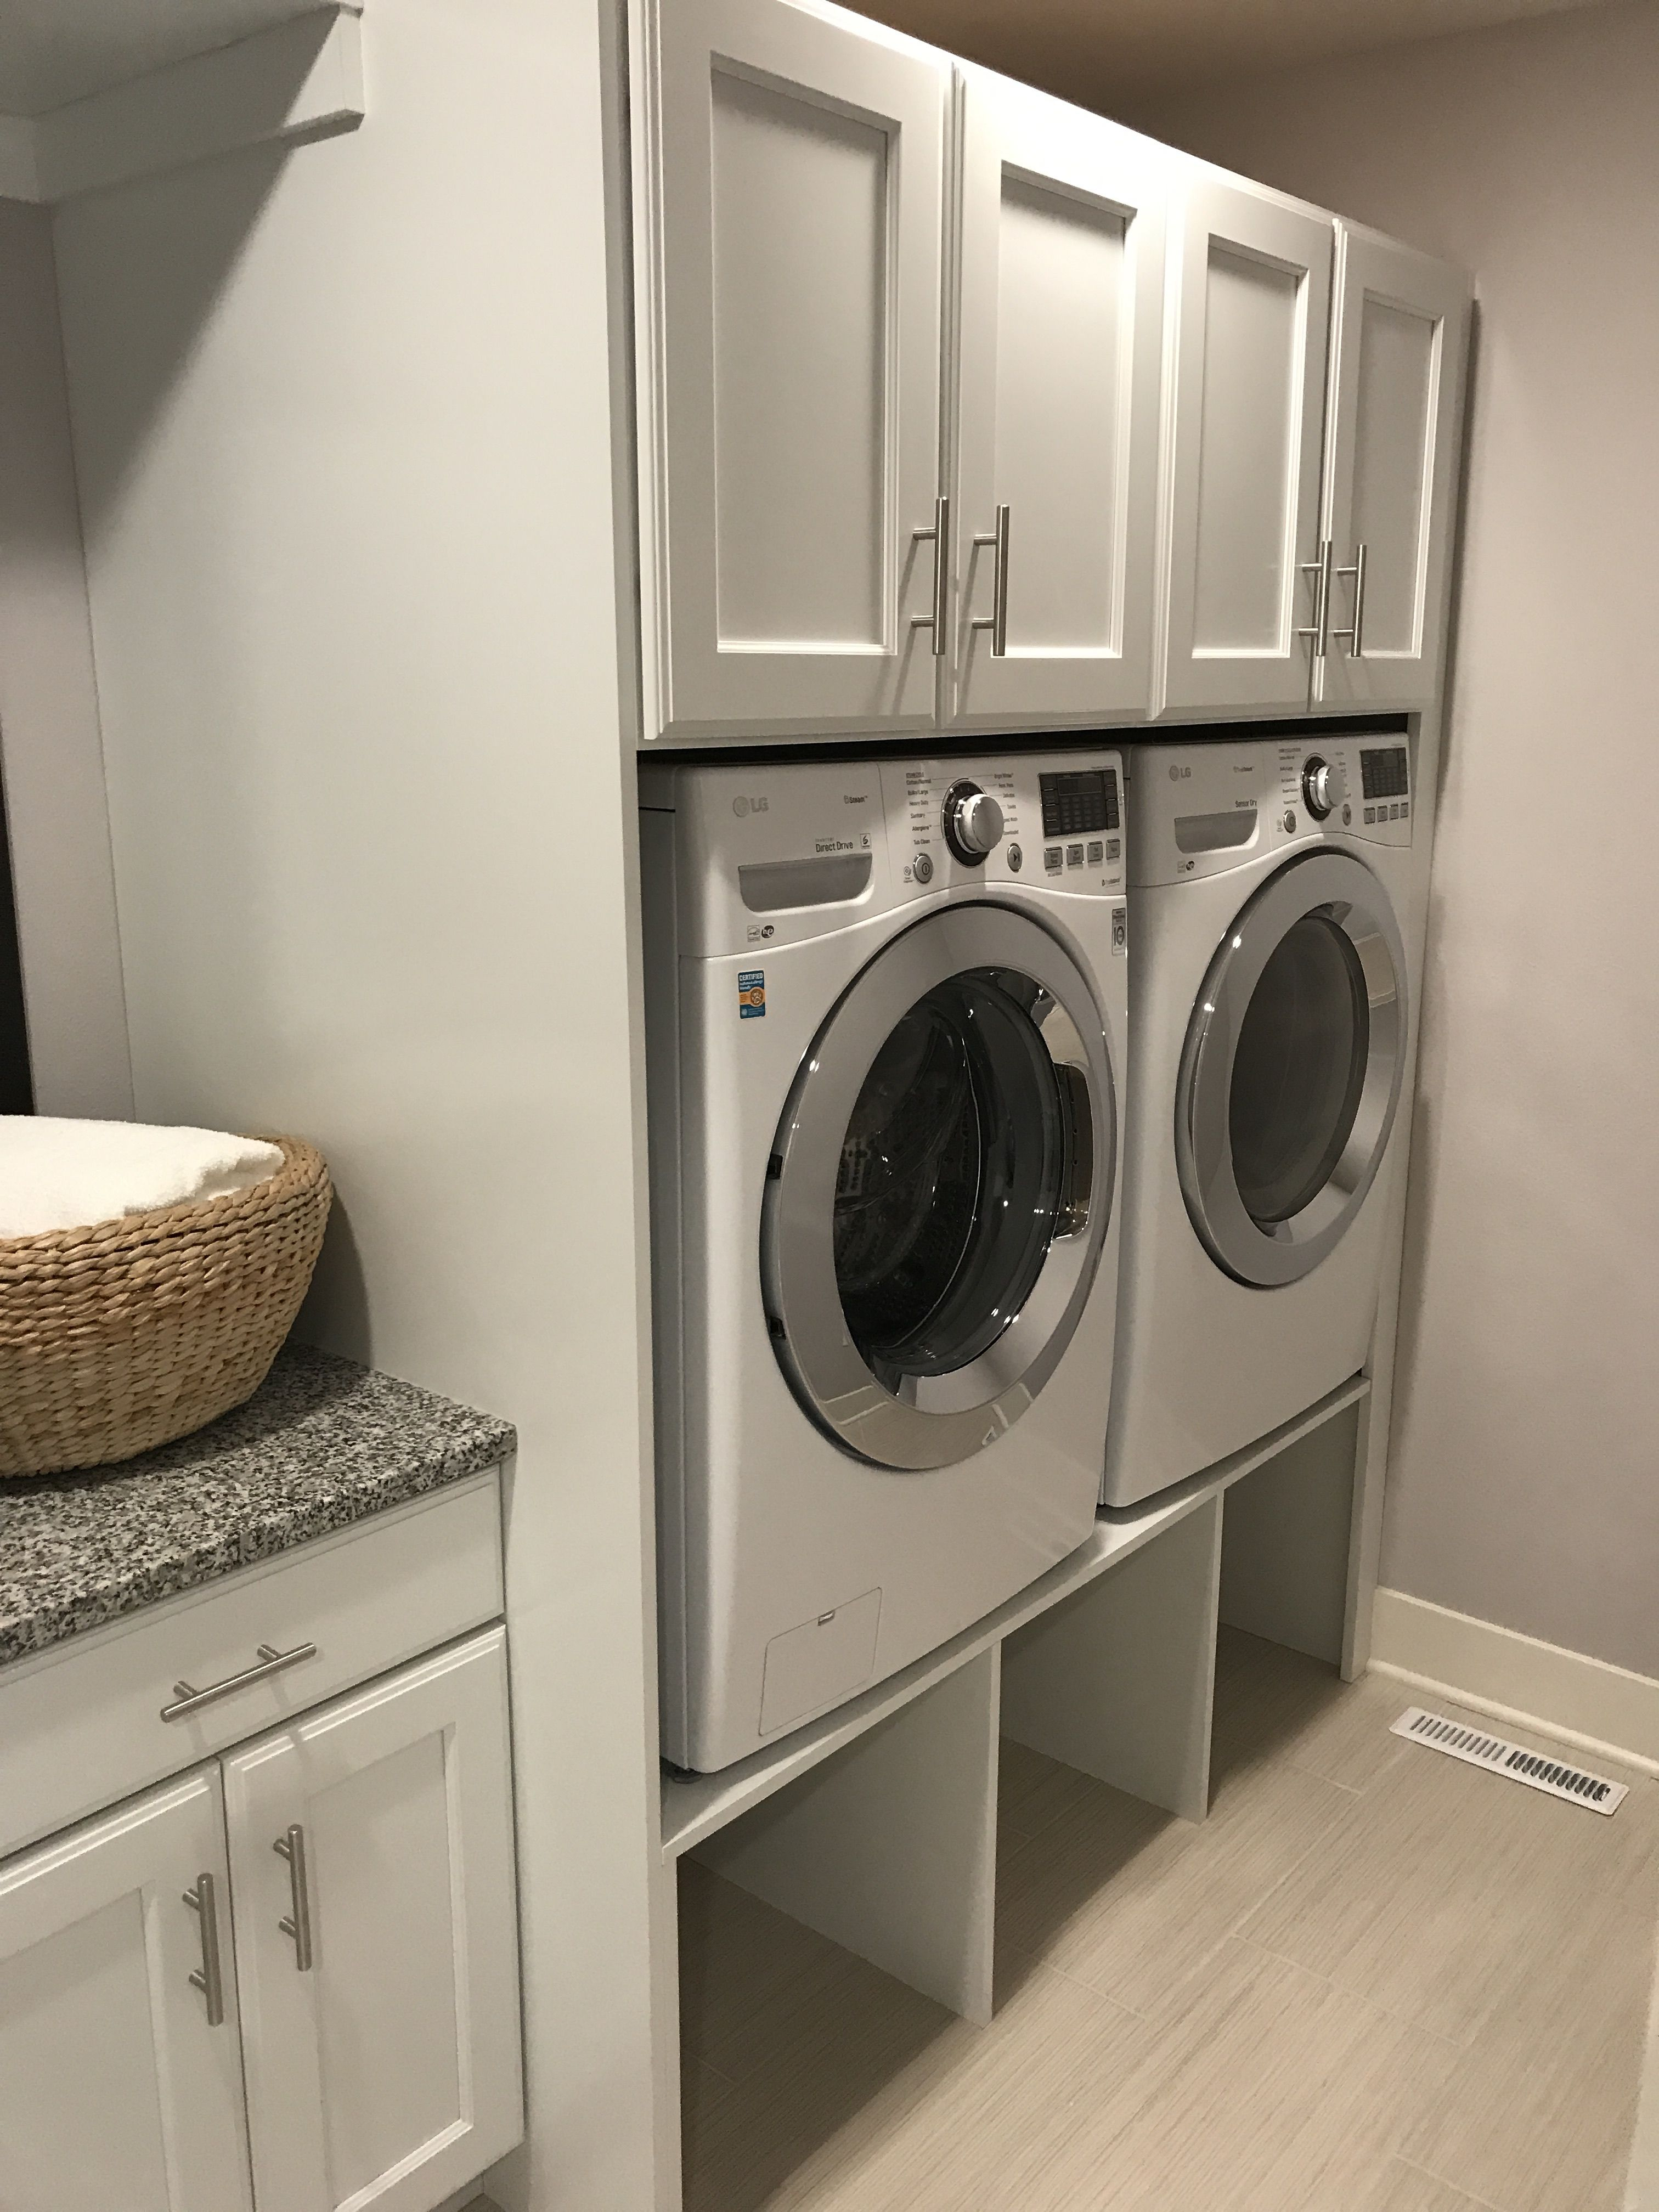 Laundry Riser Idea Basket Storage Under And Cabinets On Top